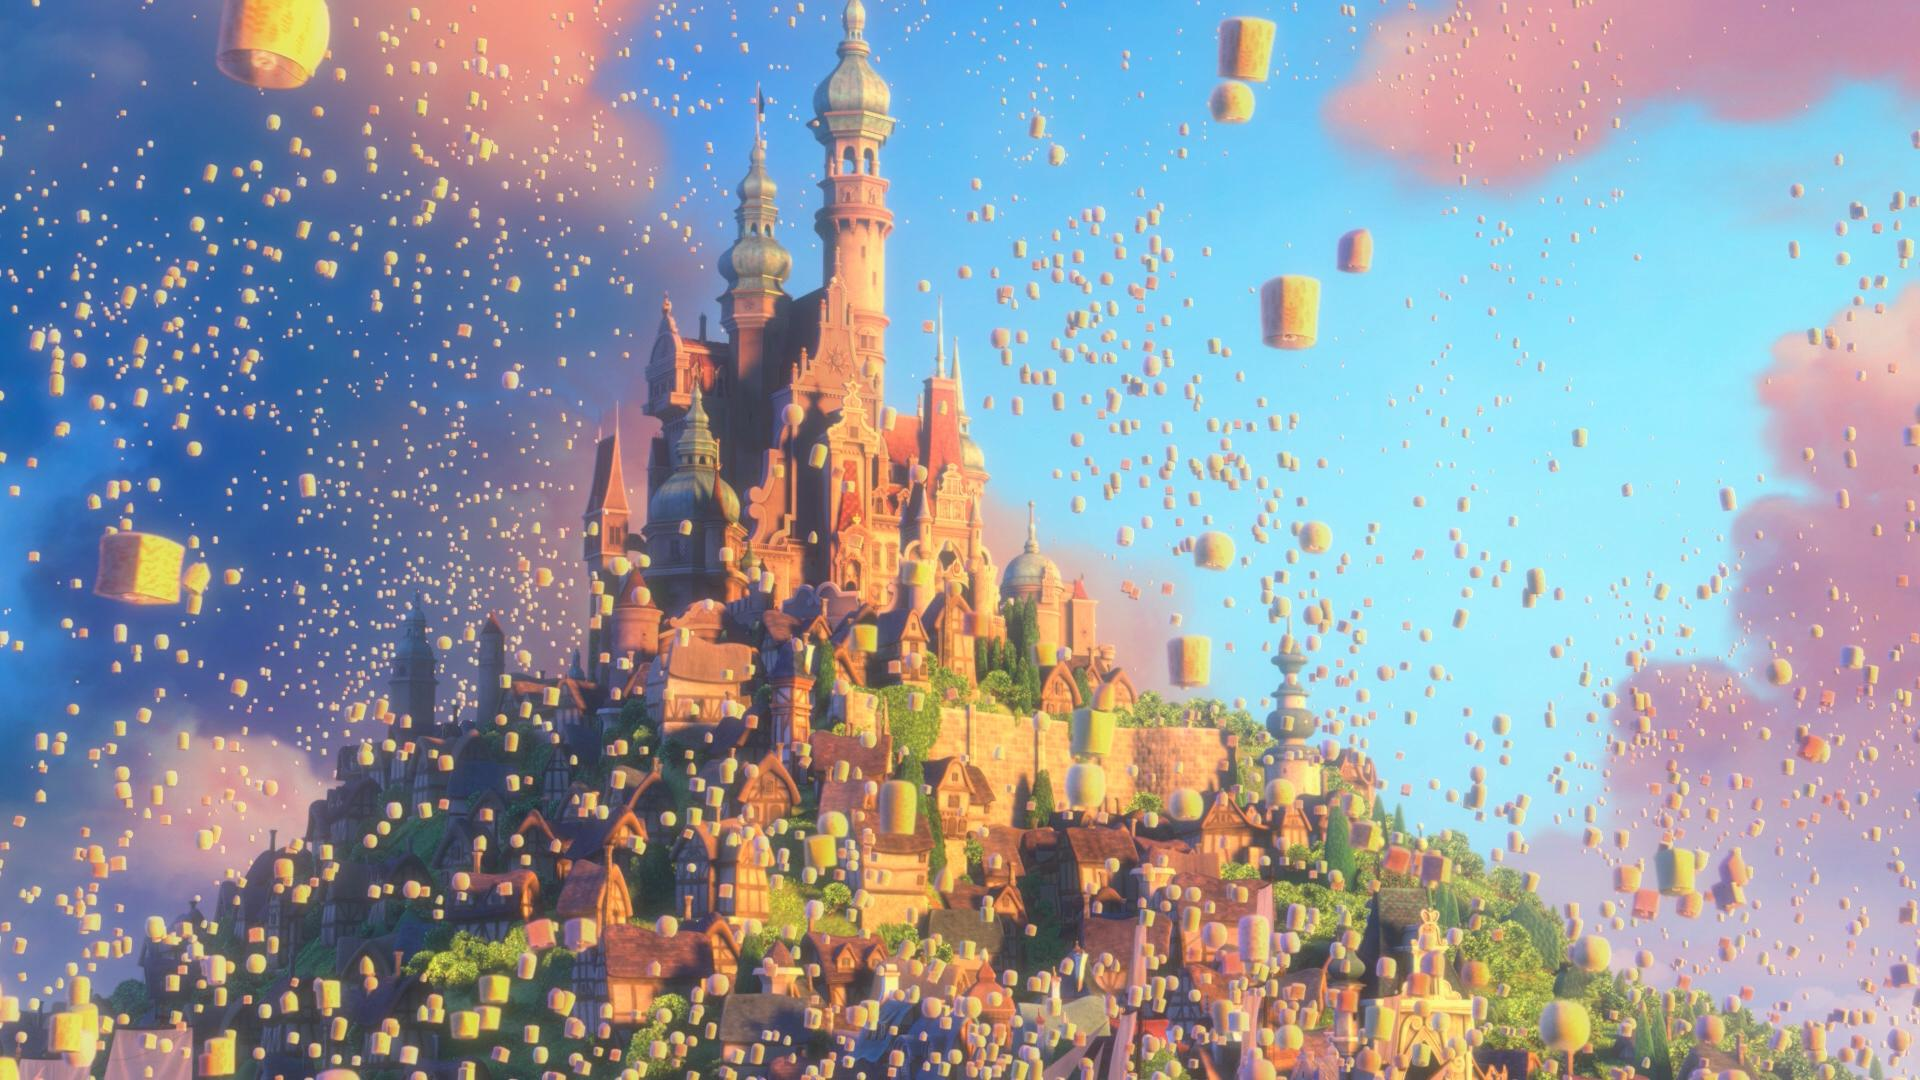 Tangled lantern wallpapers top free tangled lantern - Tangled wallpaper ...